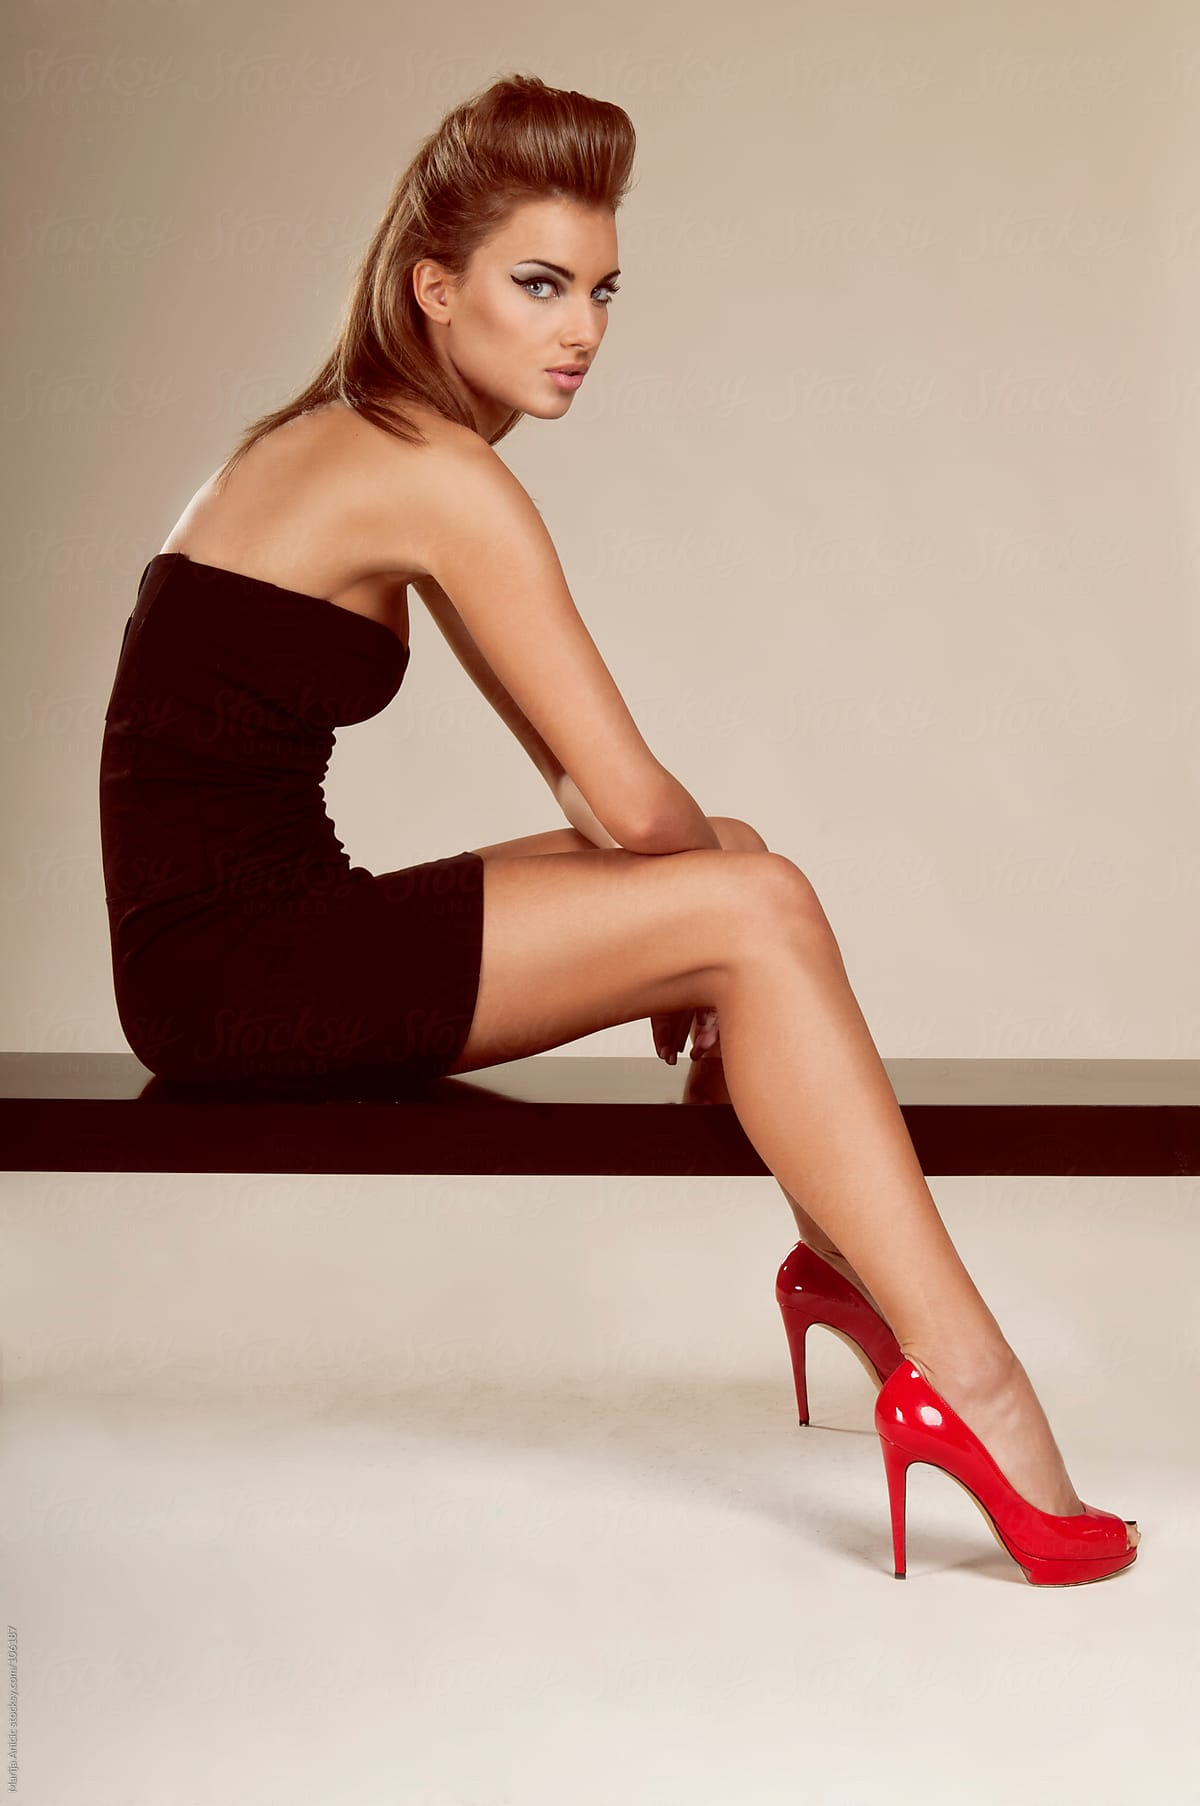 Black Dress with Red Shoes